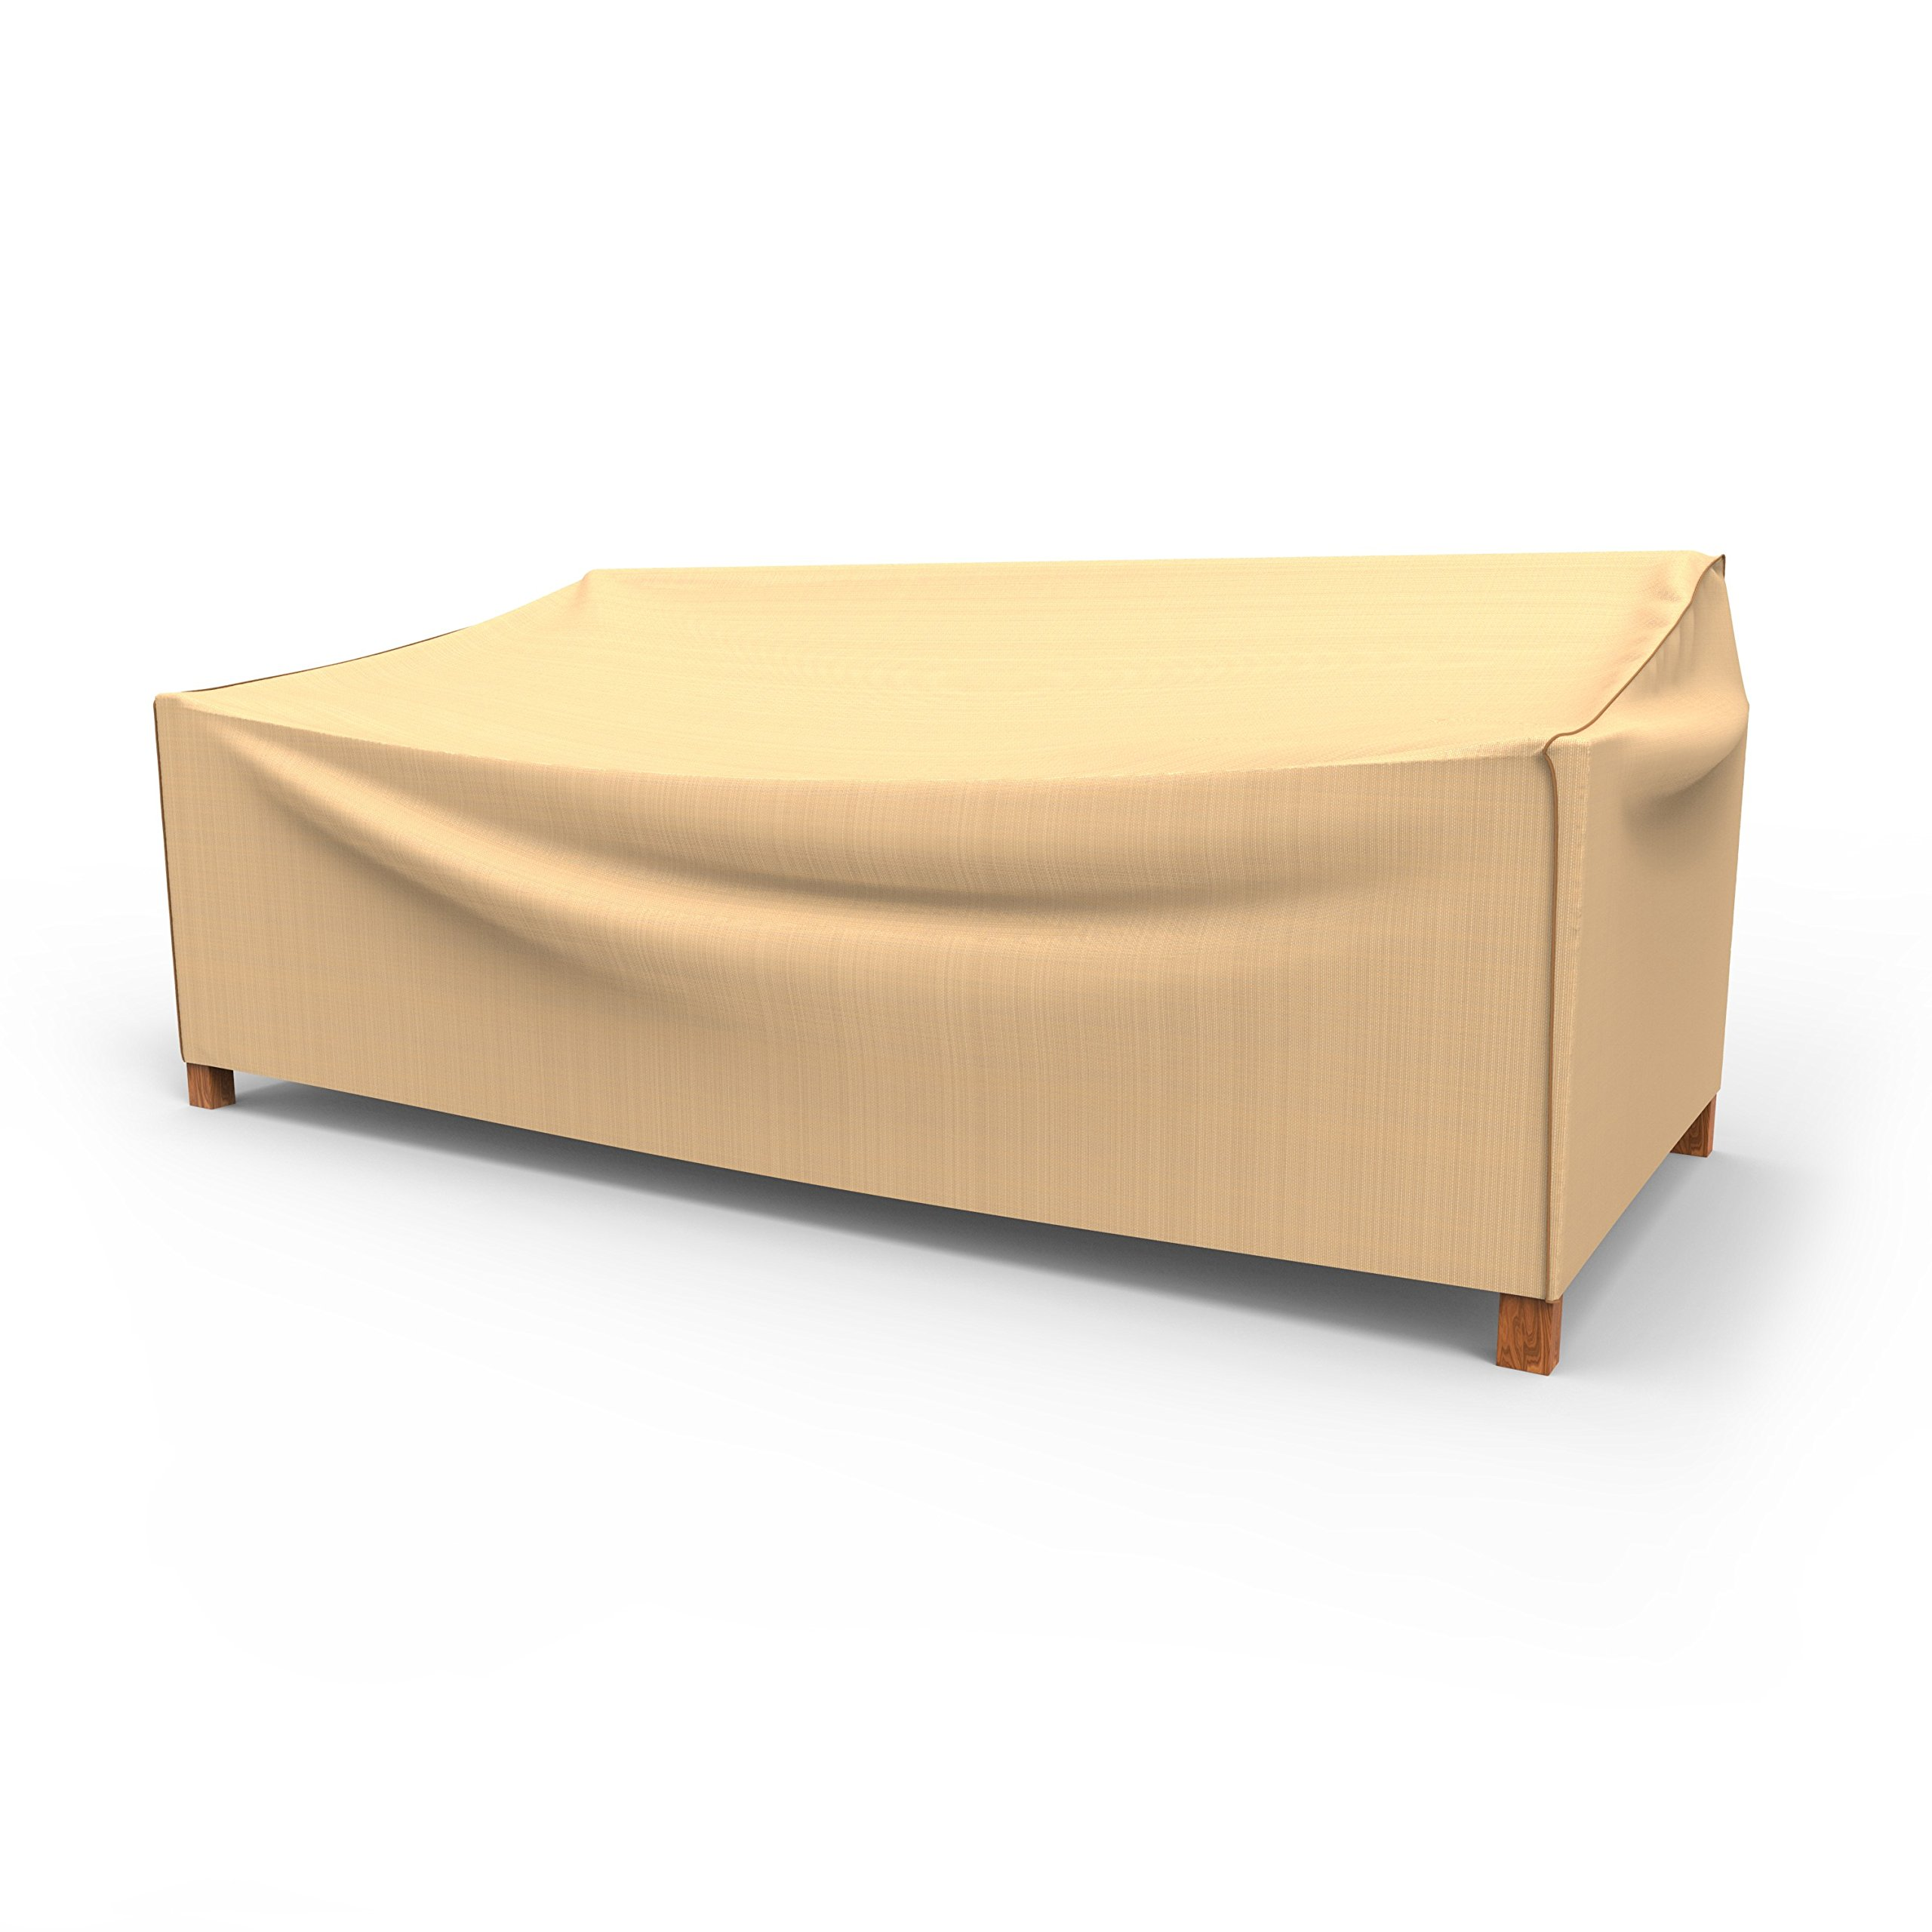 Rust-Oleum NeverWet Outdoor Patio Sofa Cover, Extra Extra Large (Tan)